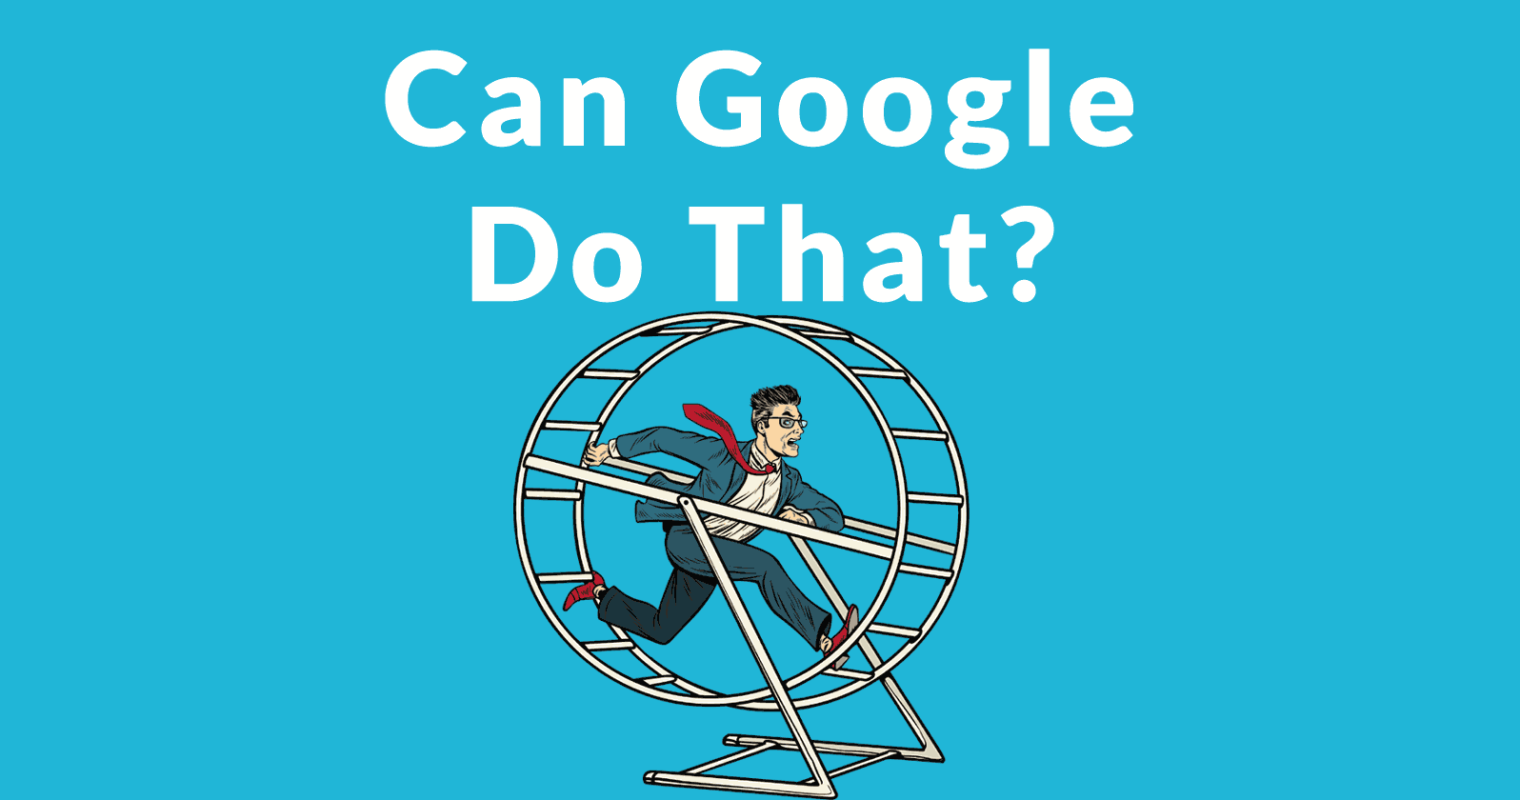 Why are Googlers So Confident About Link Spam?